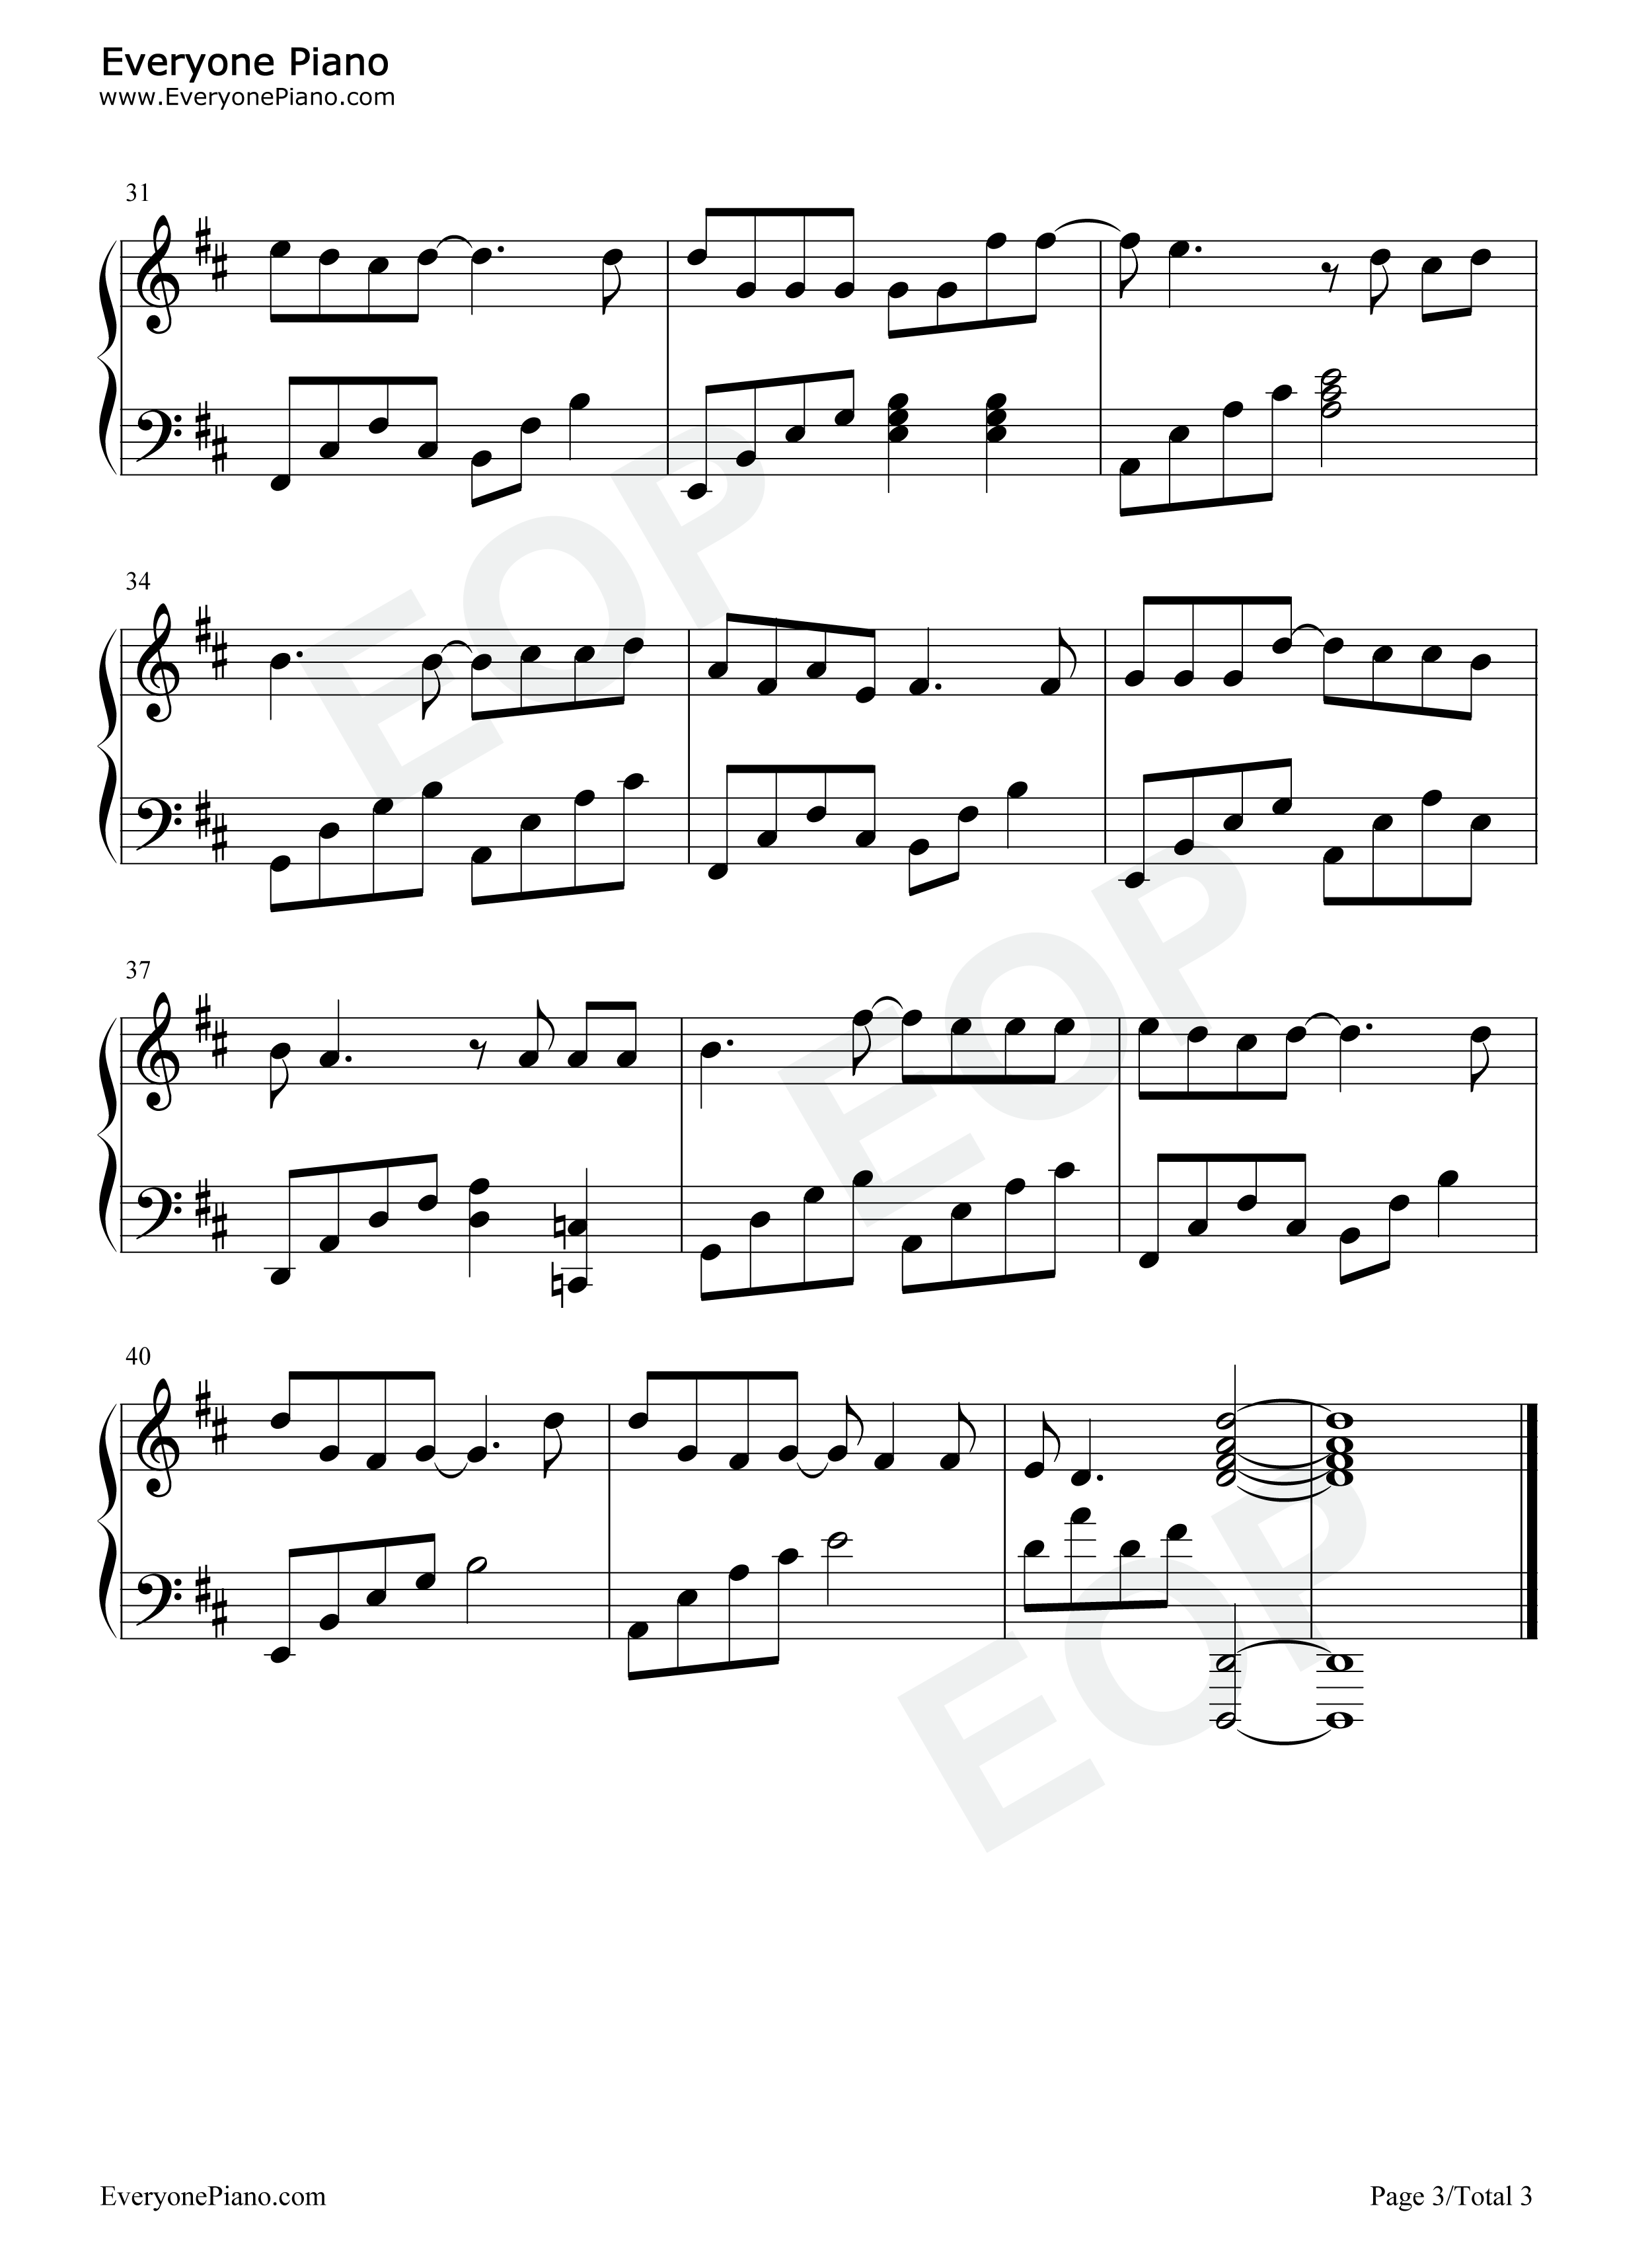 Confessing Eop Demon Training Camp Stave Preview 3 Free Piano Sheet